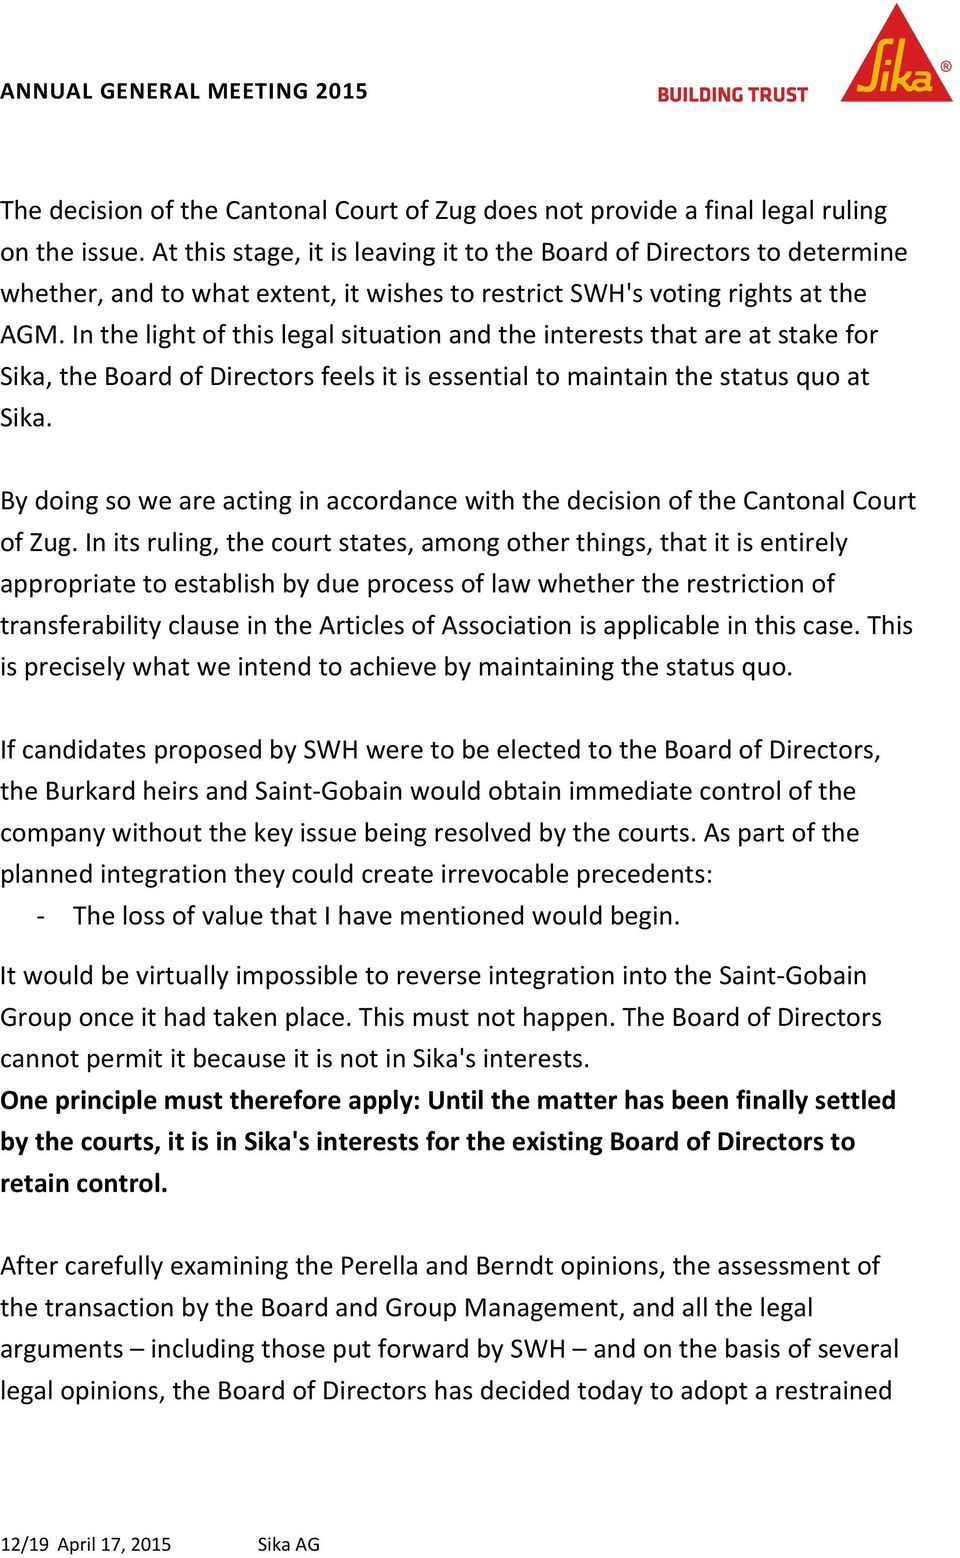 In the light of this legal situation and the interests that are at stake for Sika, the Board of Directors feels it is essential to maintain the status quo at Sika.